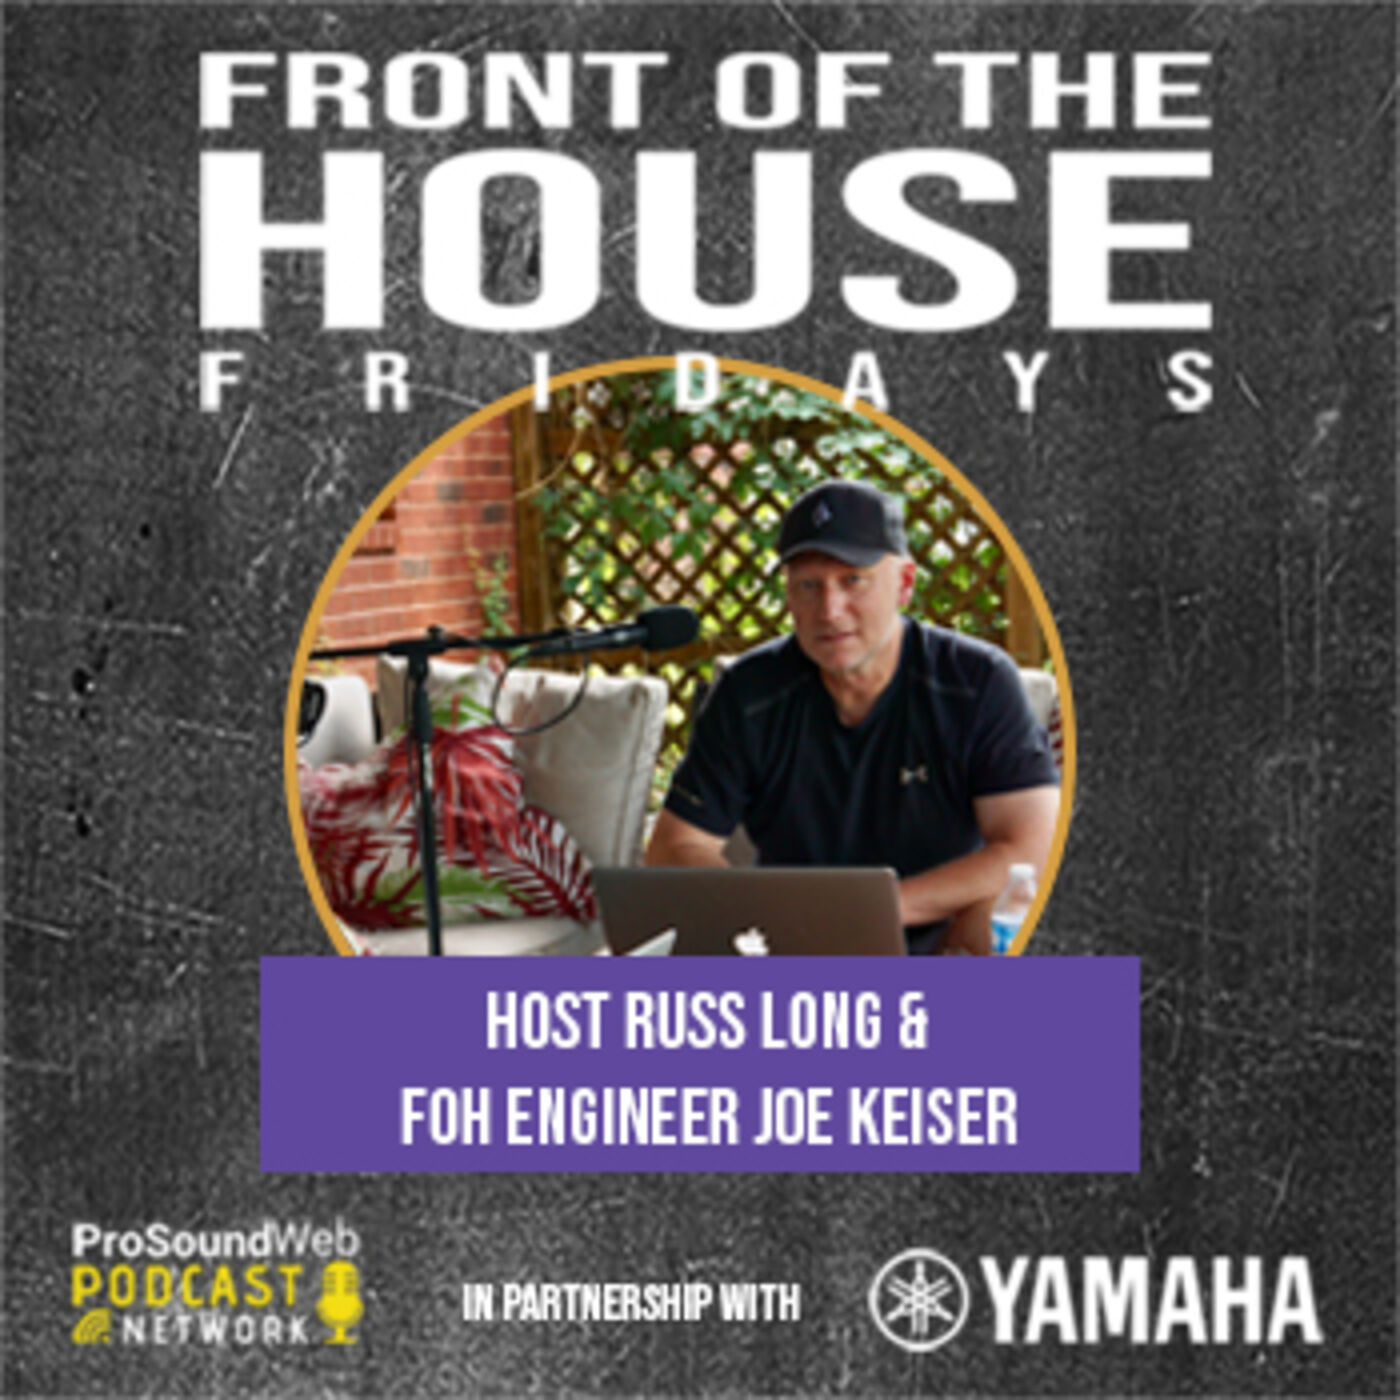 Episode 5: FOH Engineer Joe Keiser